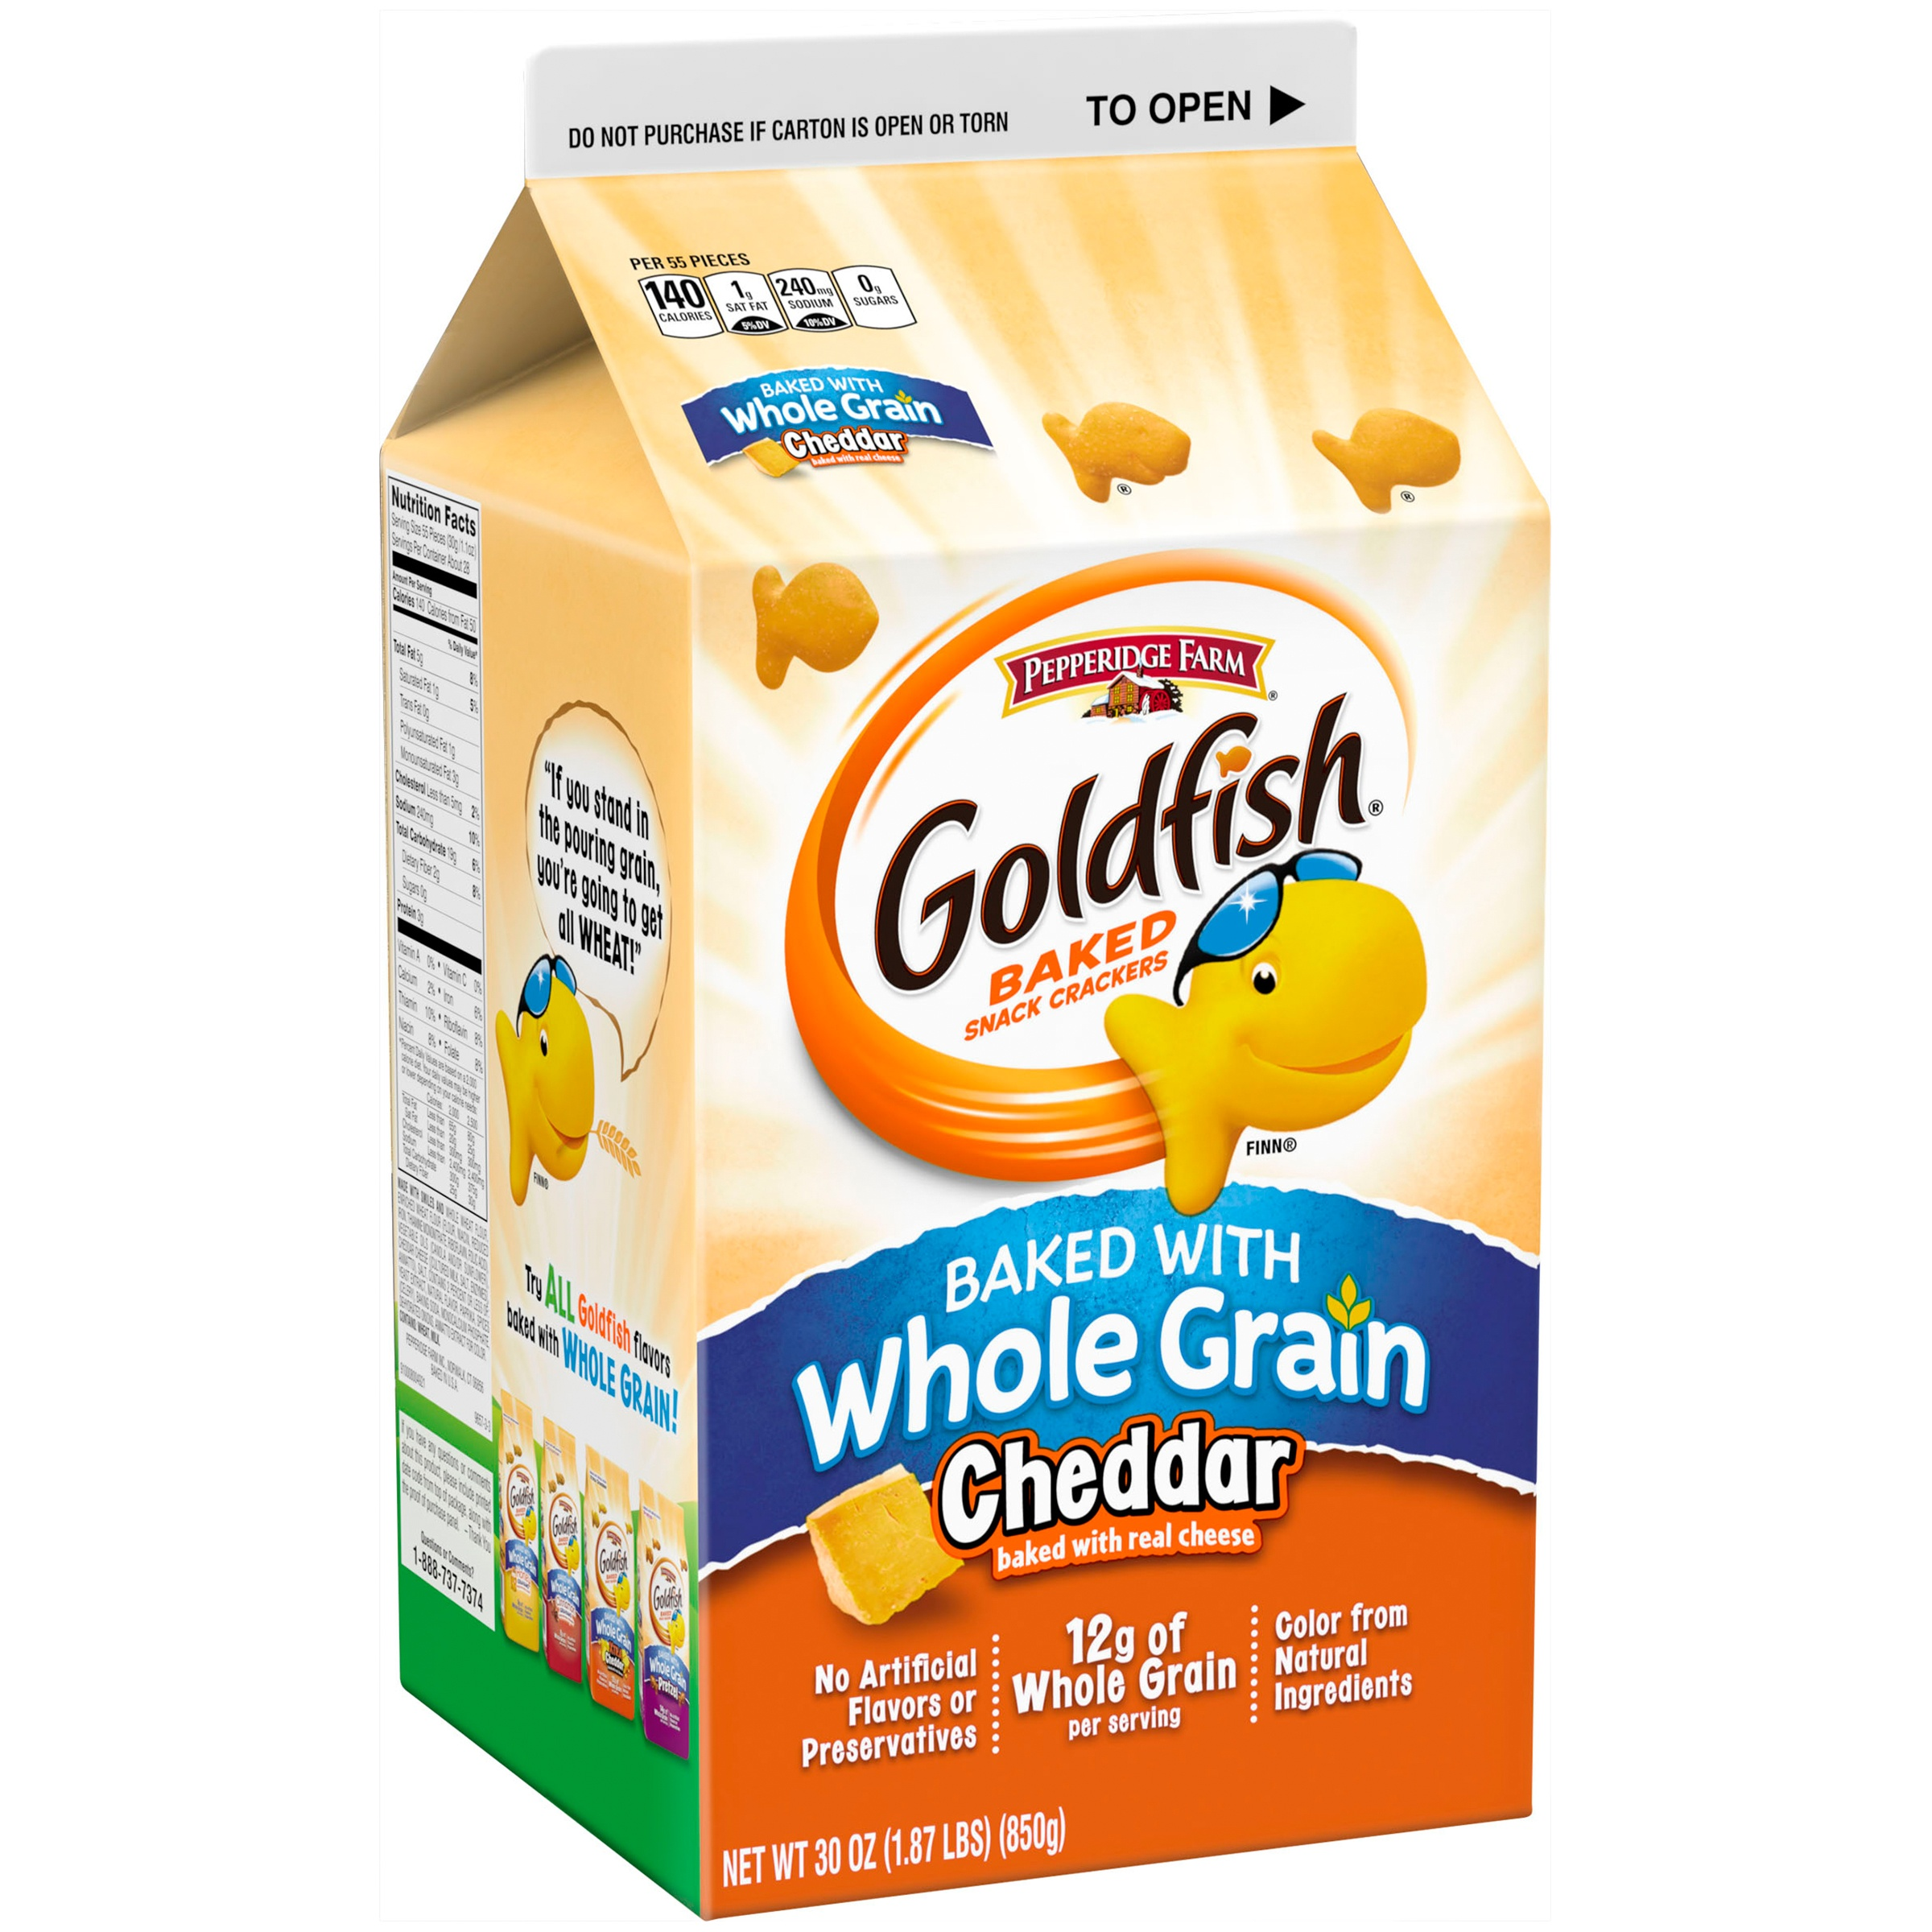 Goldfish Baked with Whole Grain Cheddar Flavor, 30.0 OZ